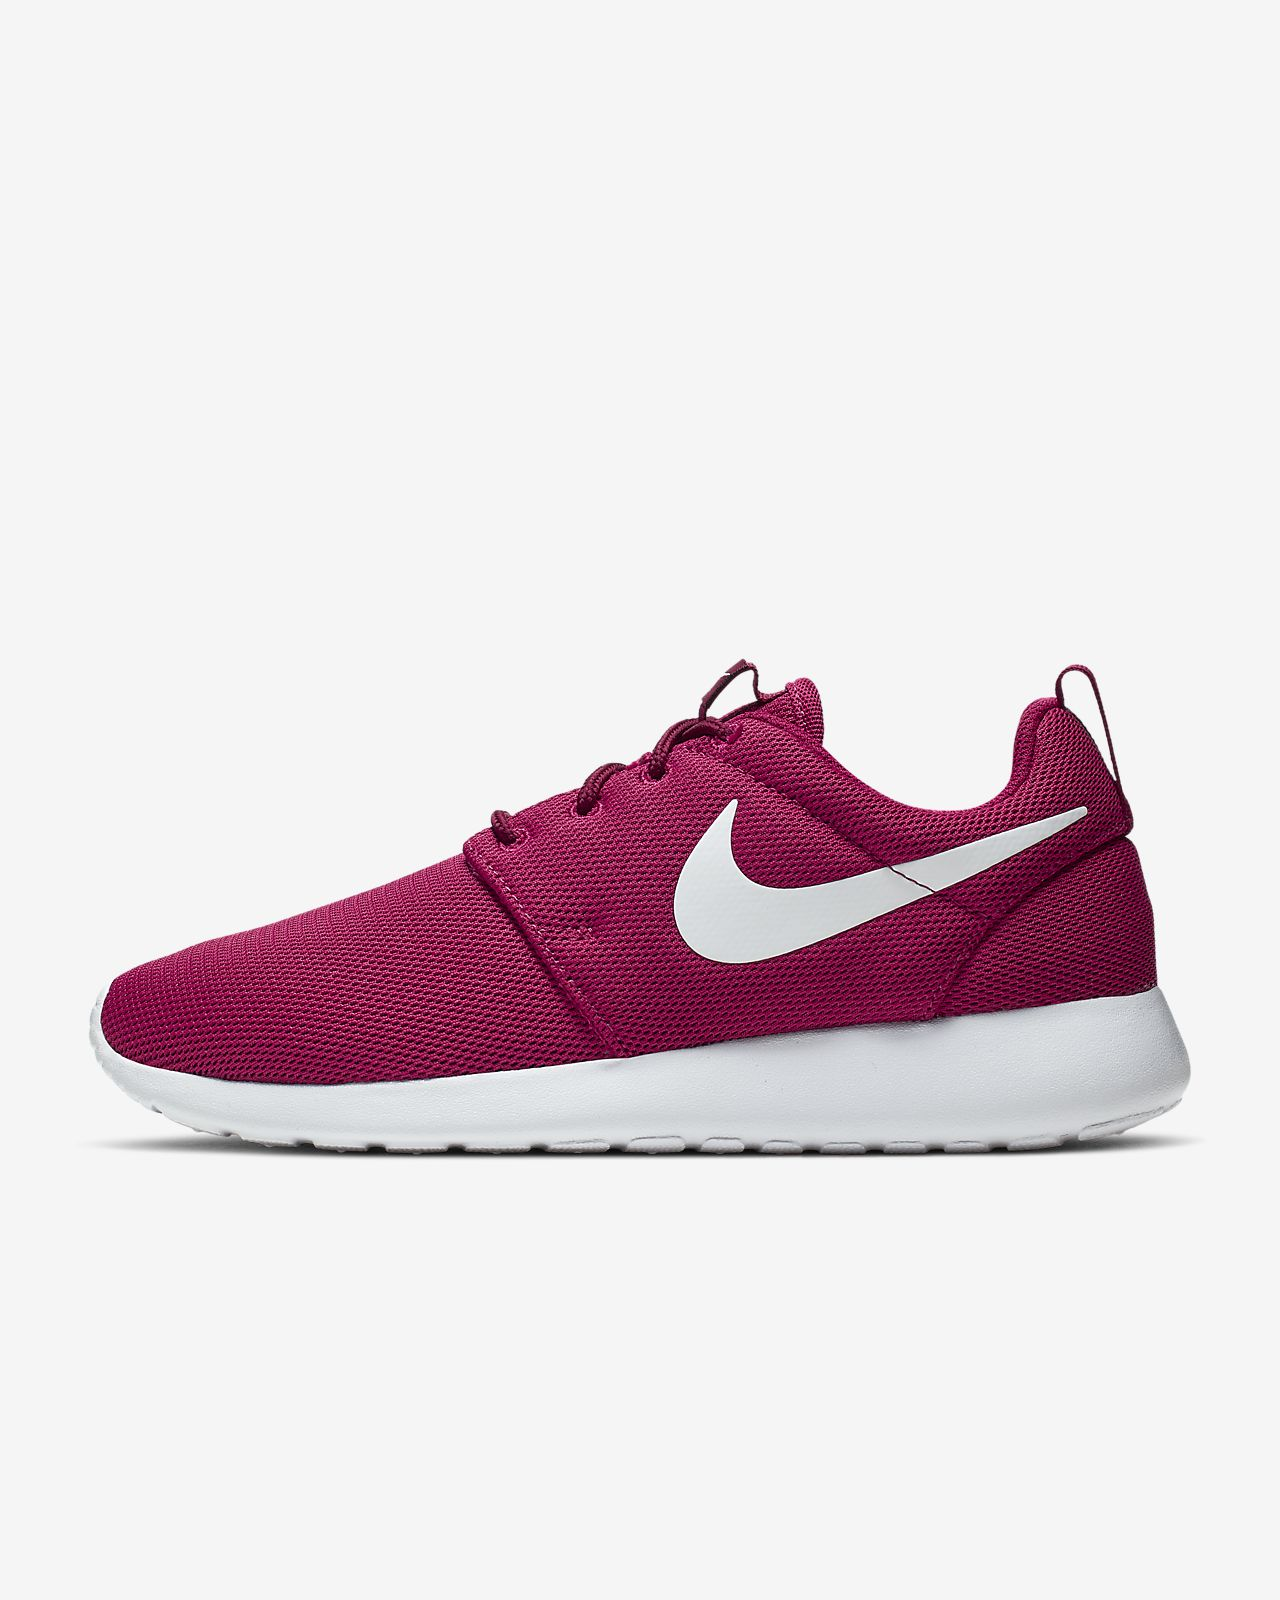 14c503bbc67 Nike Roshe One Women's Shoe